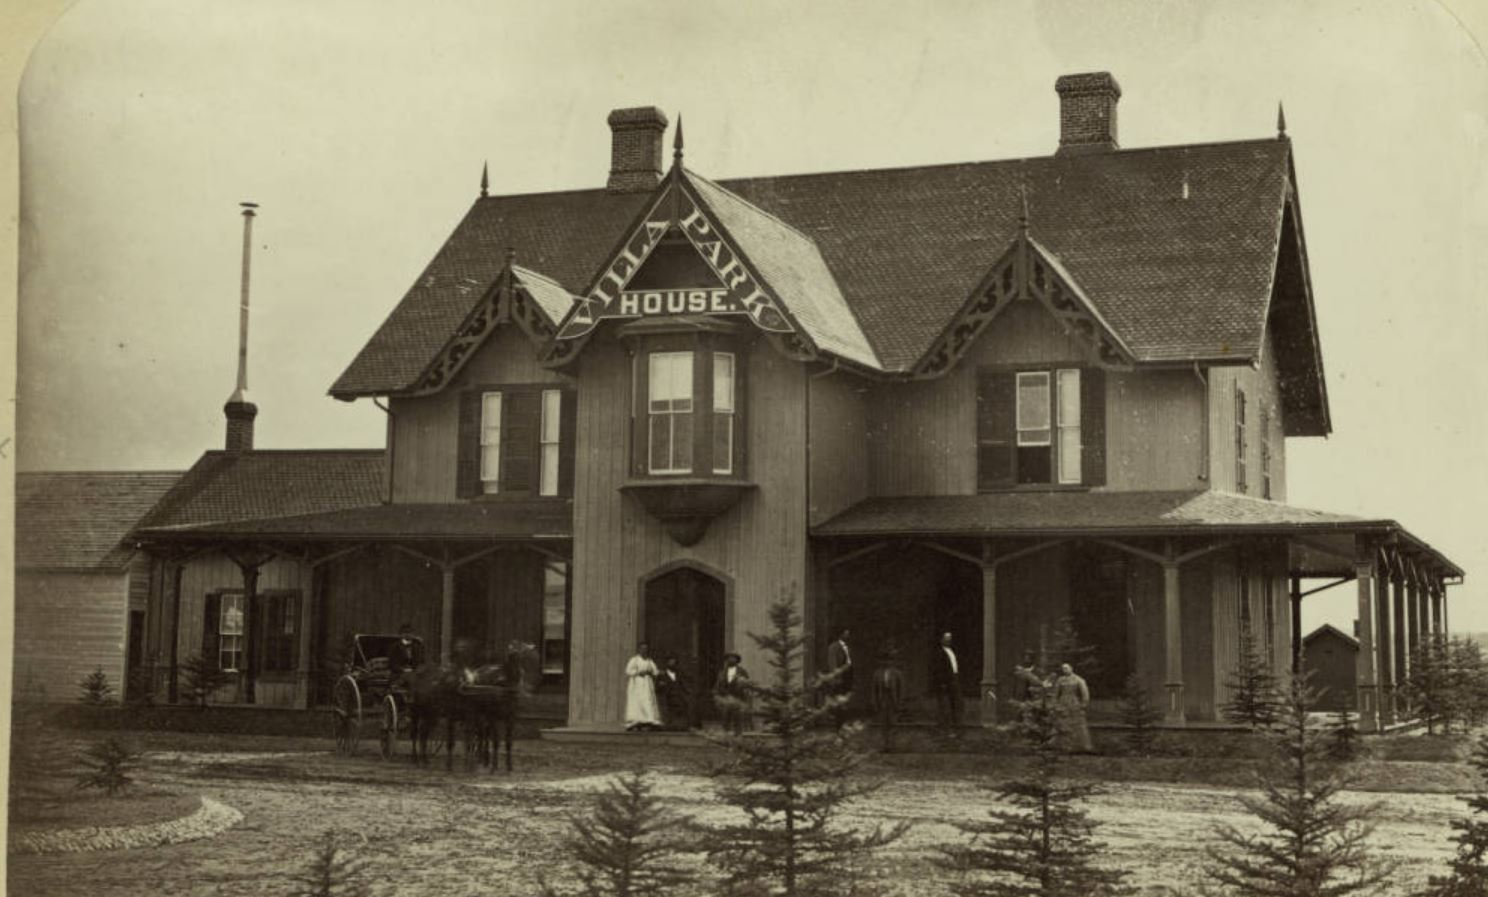 """Men and women, one man in a horse-drawn buggy, pose outdoors near the Villa Park House on The Boulevard (Federal Boulevard) in the Villa Park neighborhood of Denver, Colorado. The two-story hotel has a covered porch, decorative trim, and a sign that reads: """"Villa Park House"""".e title"""